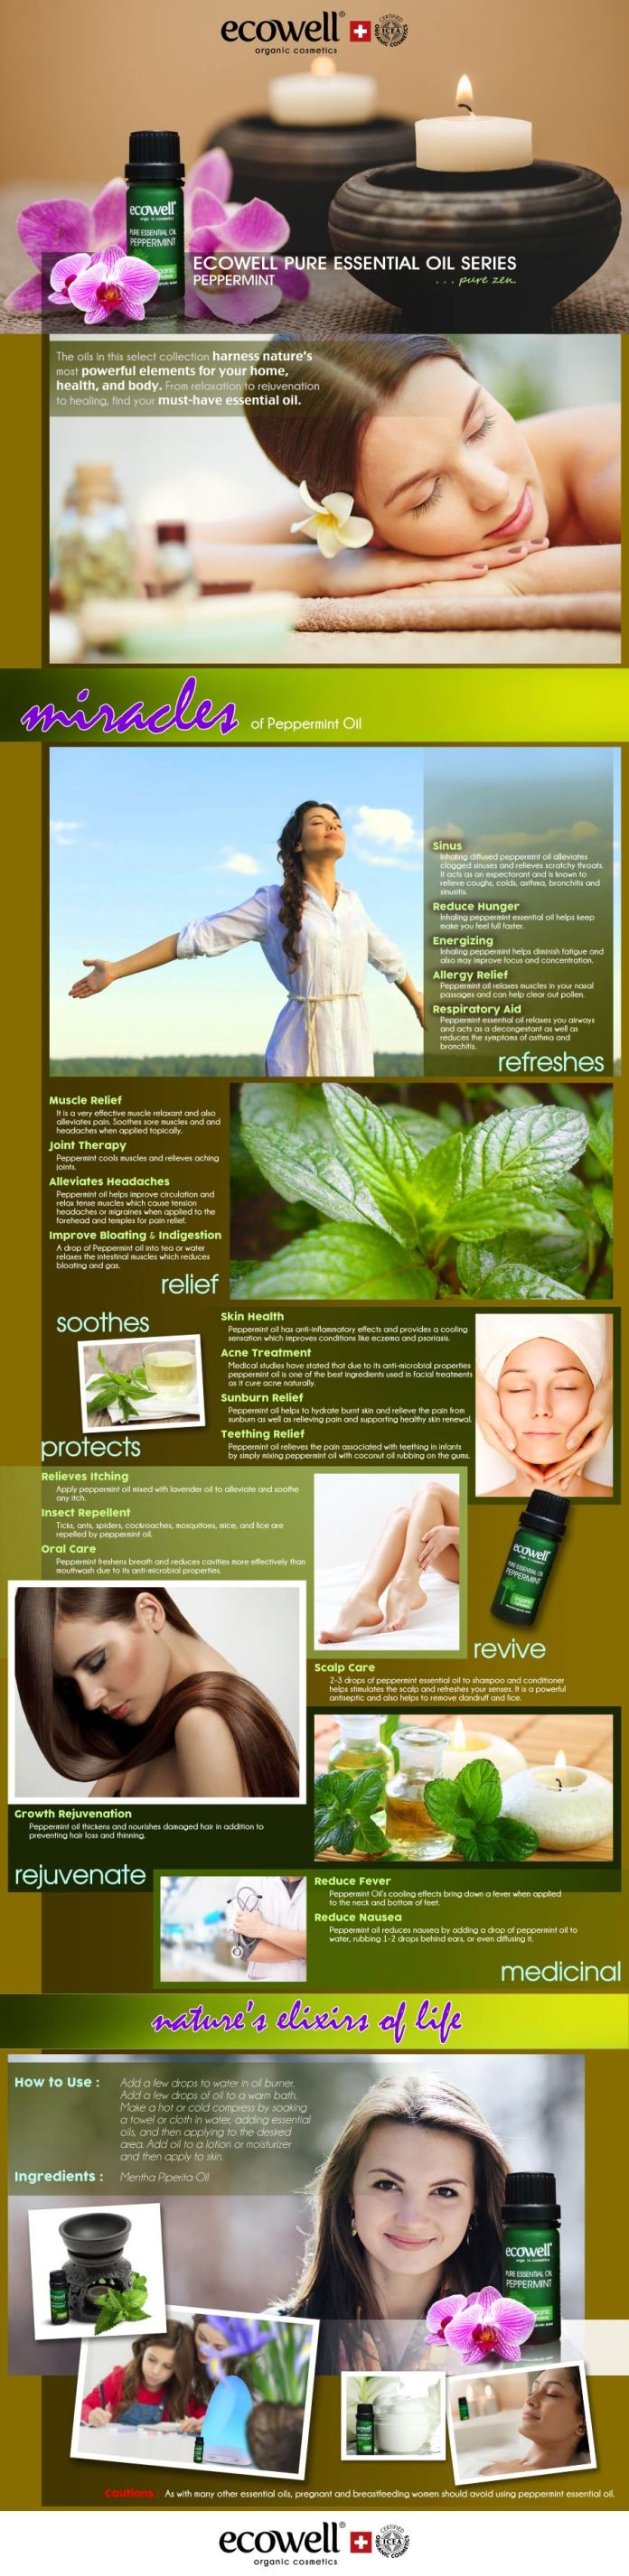 Ecowell Peppermint Pure Essential Oil